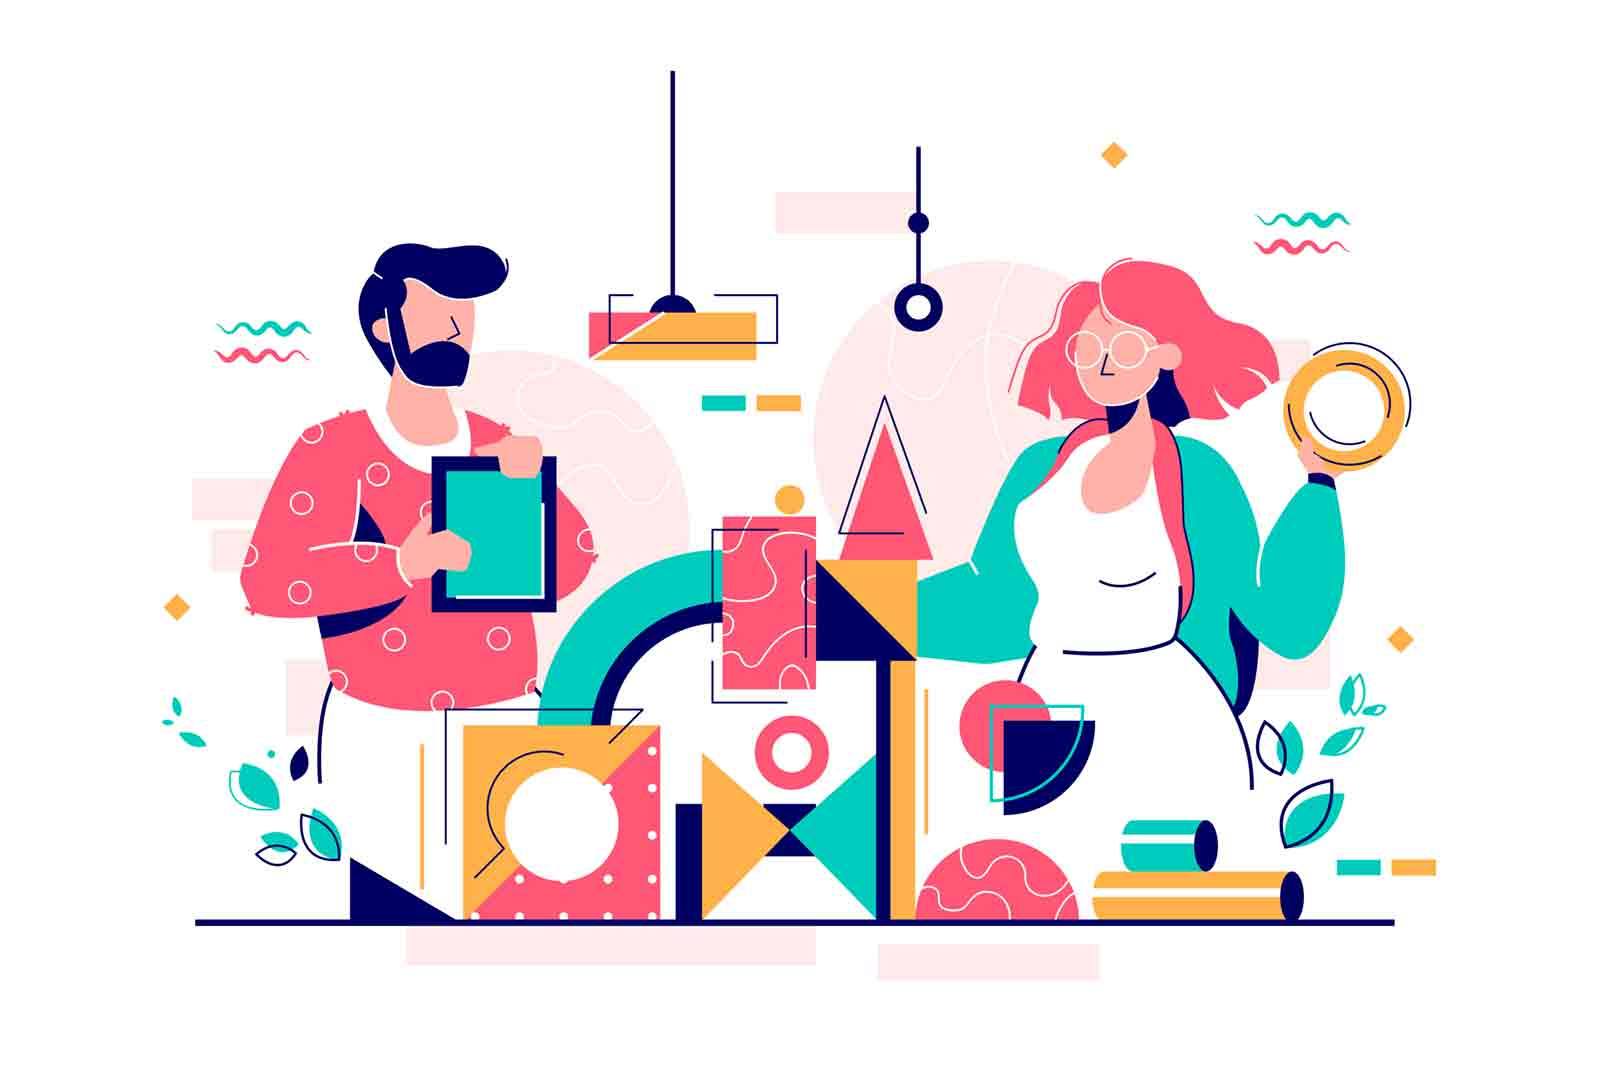 Man and woman building service using modern technology. Concept flat vector illustration, isolated on white background.